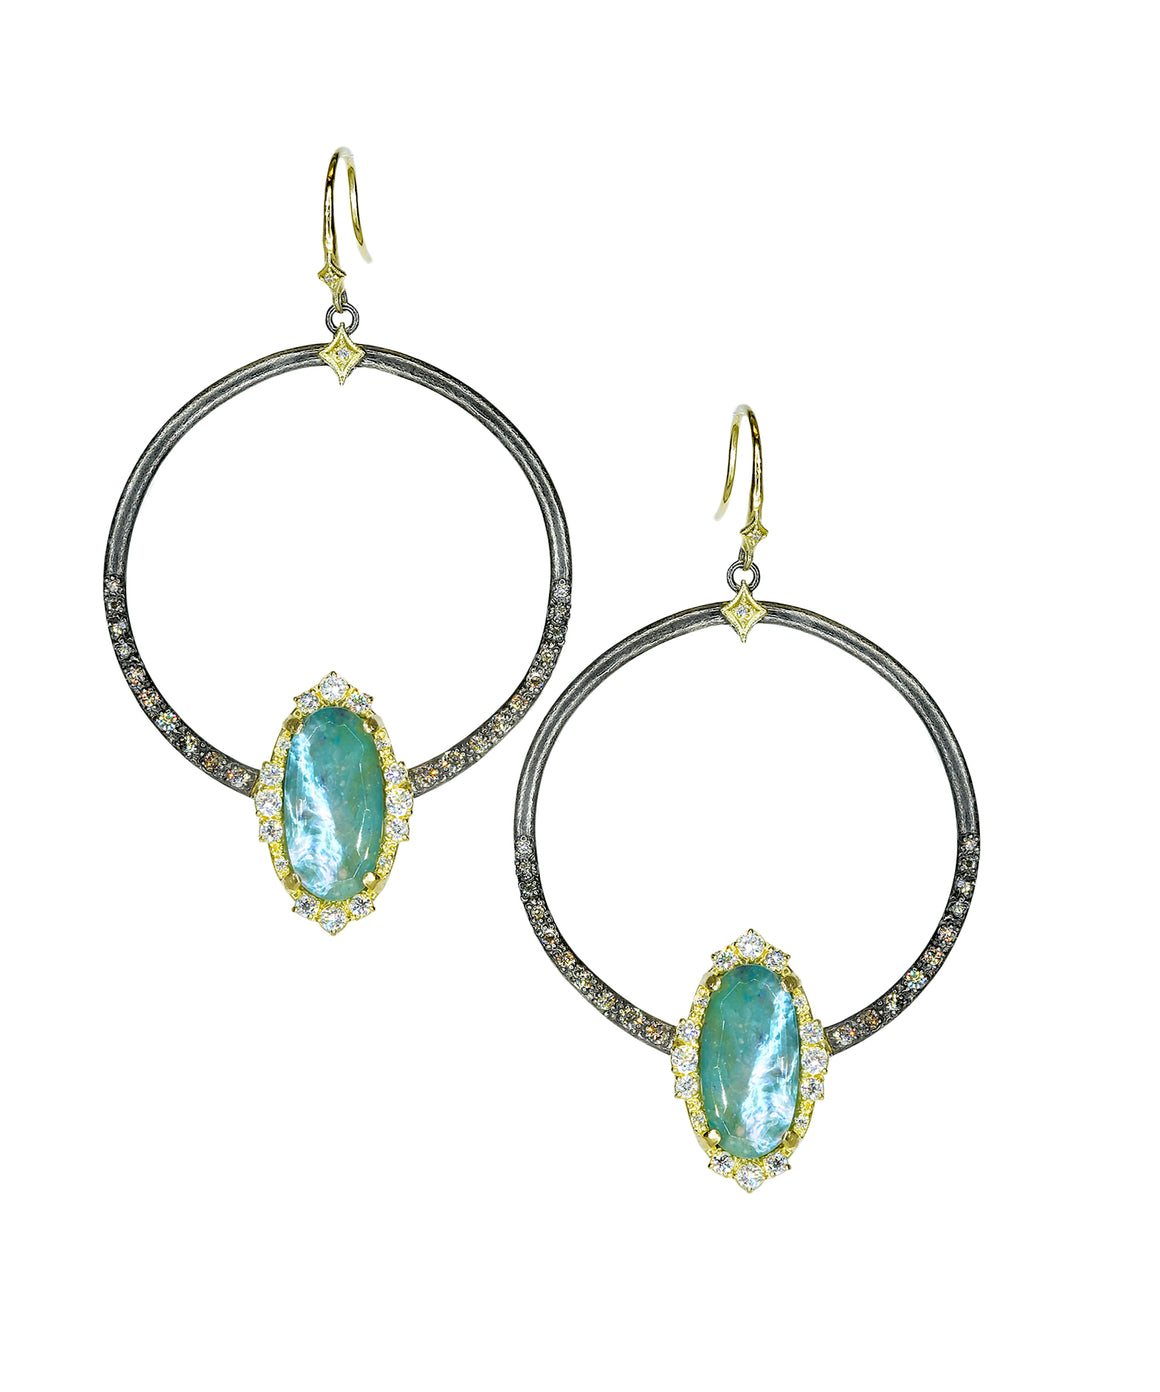 Circle earrings with Peruvian opal - Lesley Ann Jewels